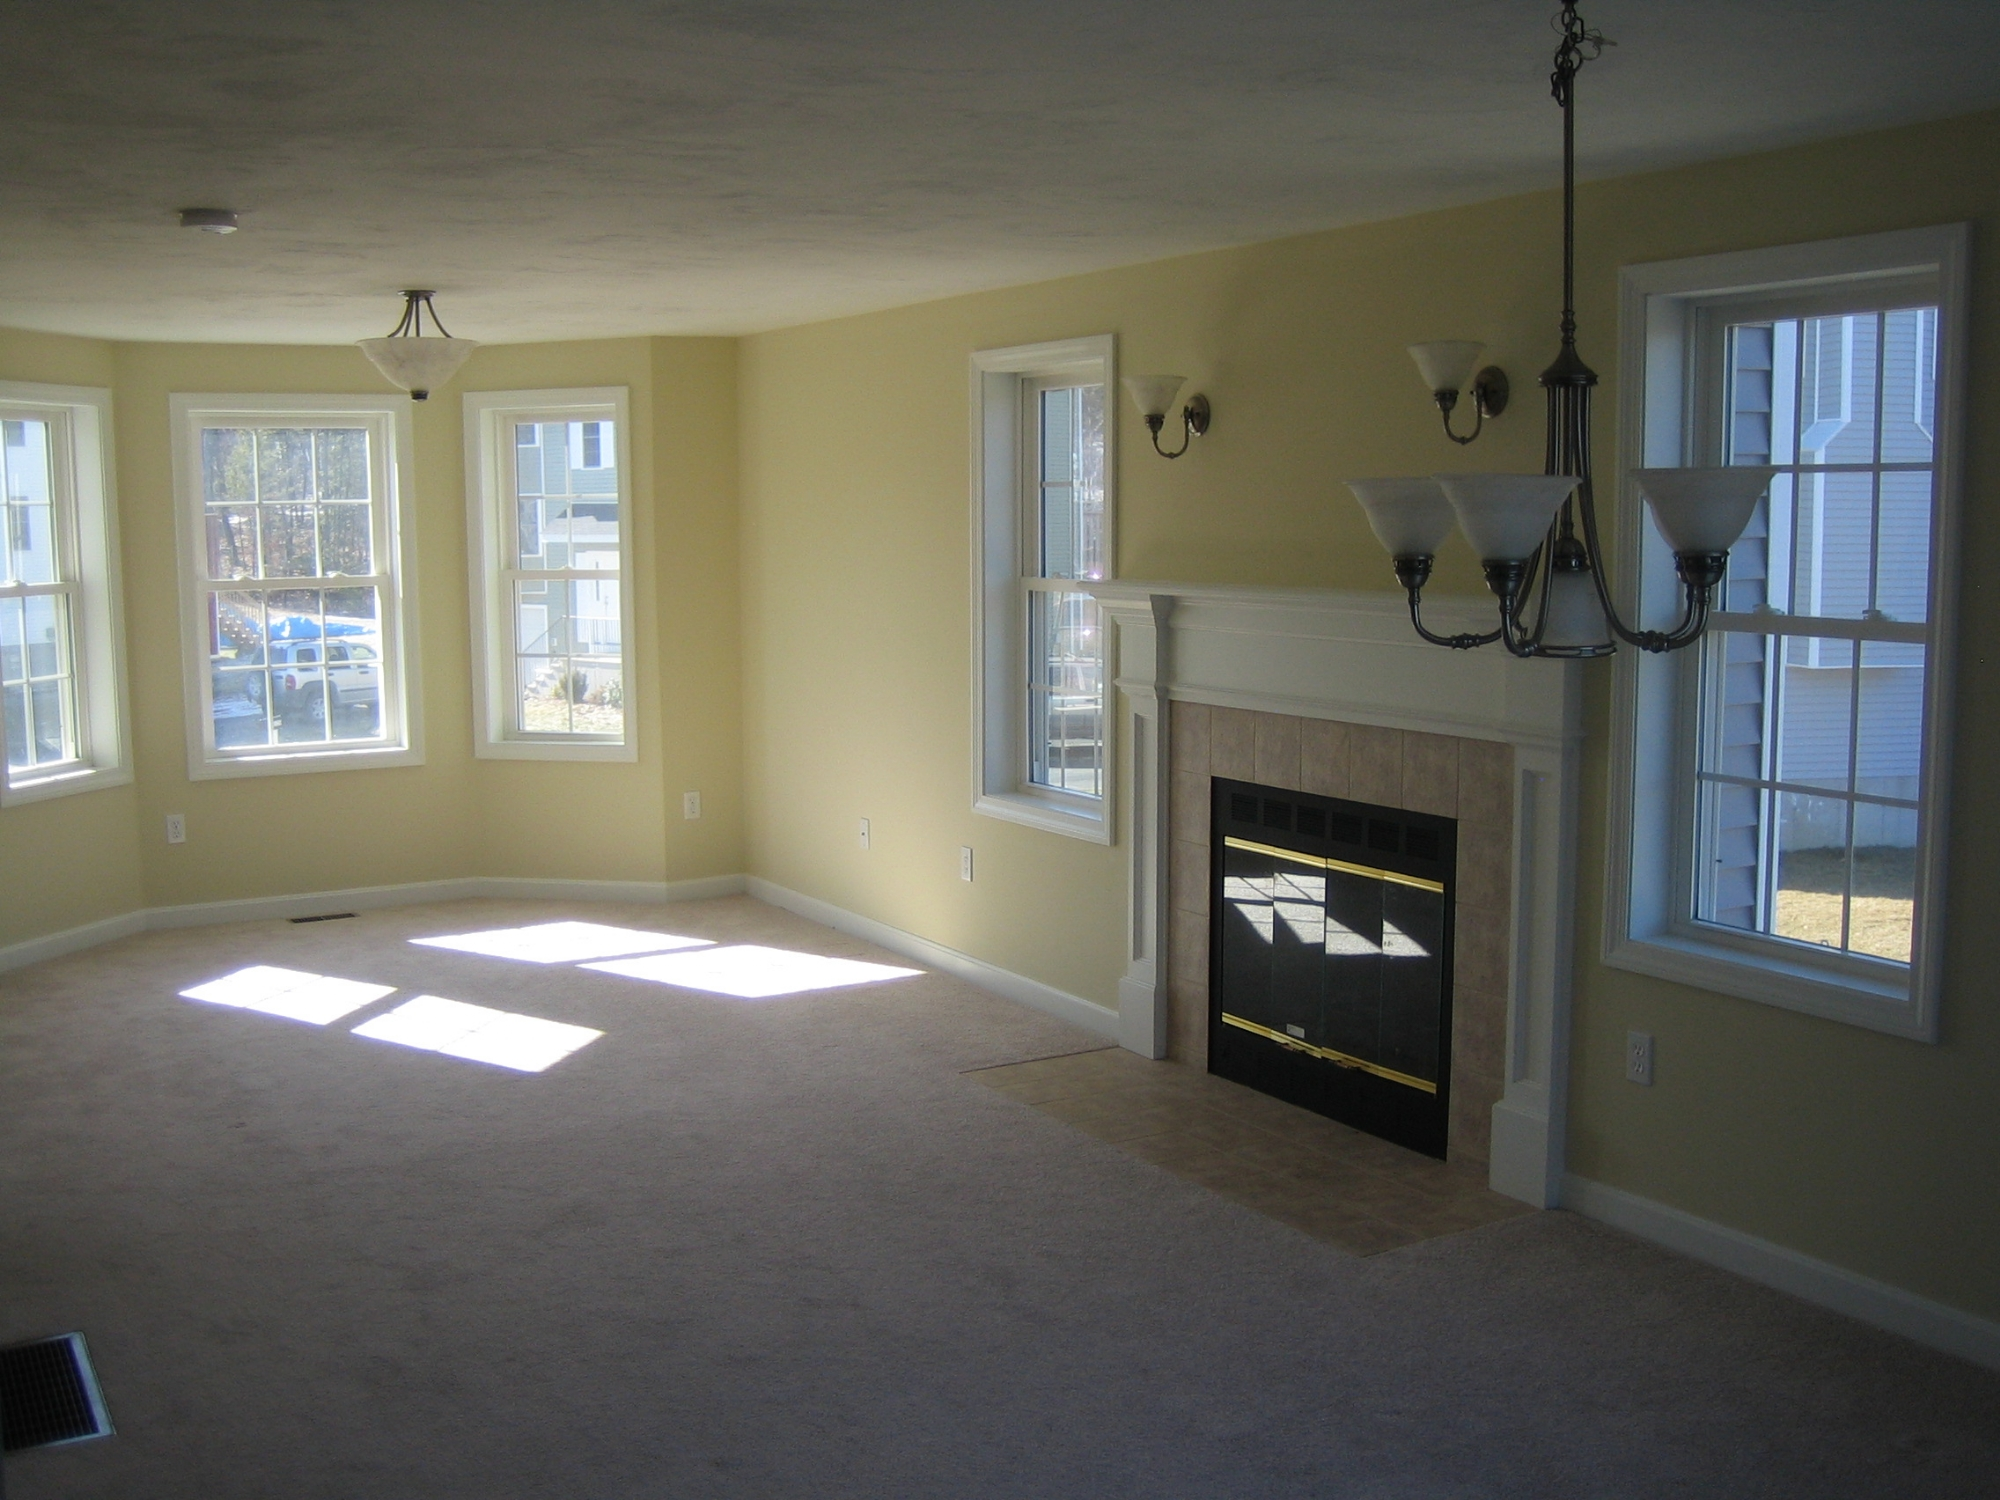 3 bedroom furnished apartment available june 1 2019 - 3 bedroom apartments in worcester ma ...